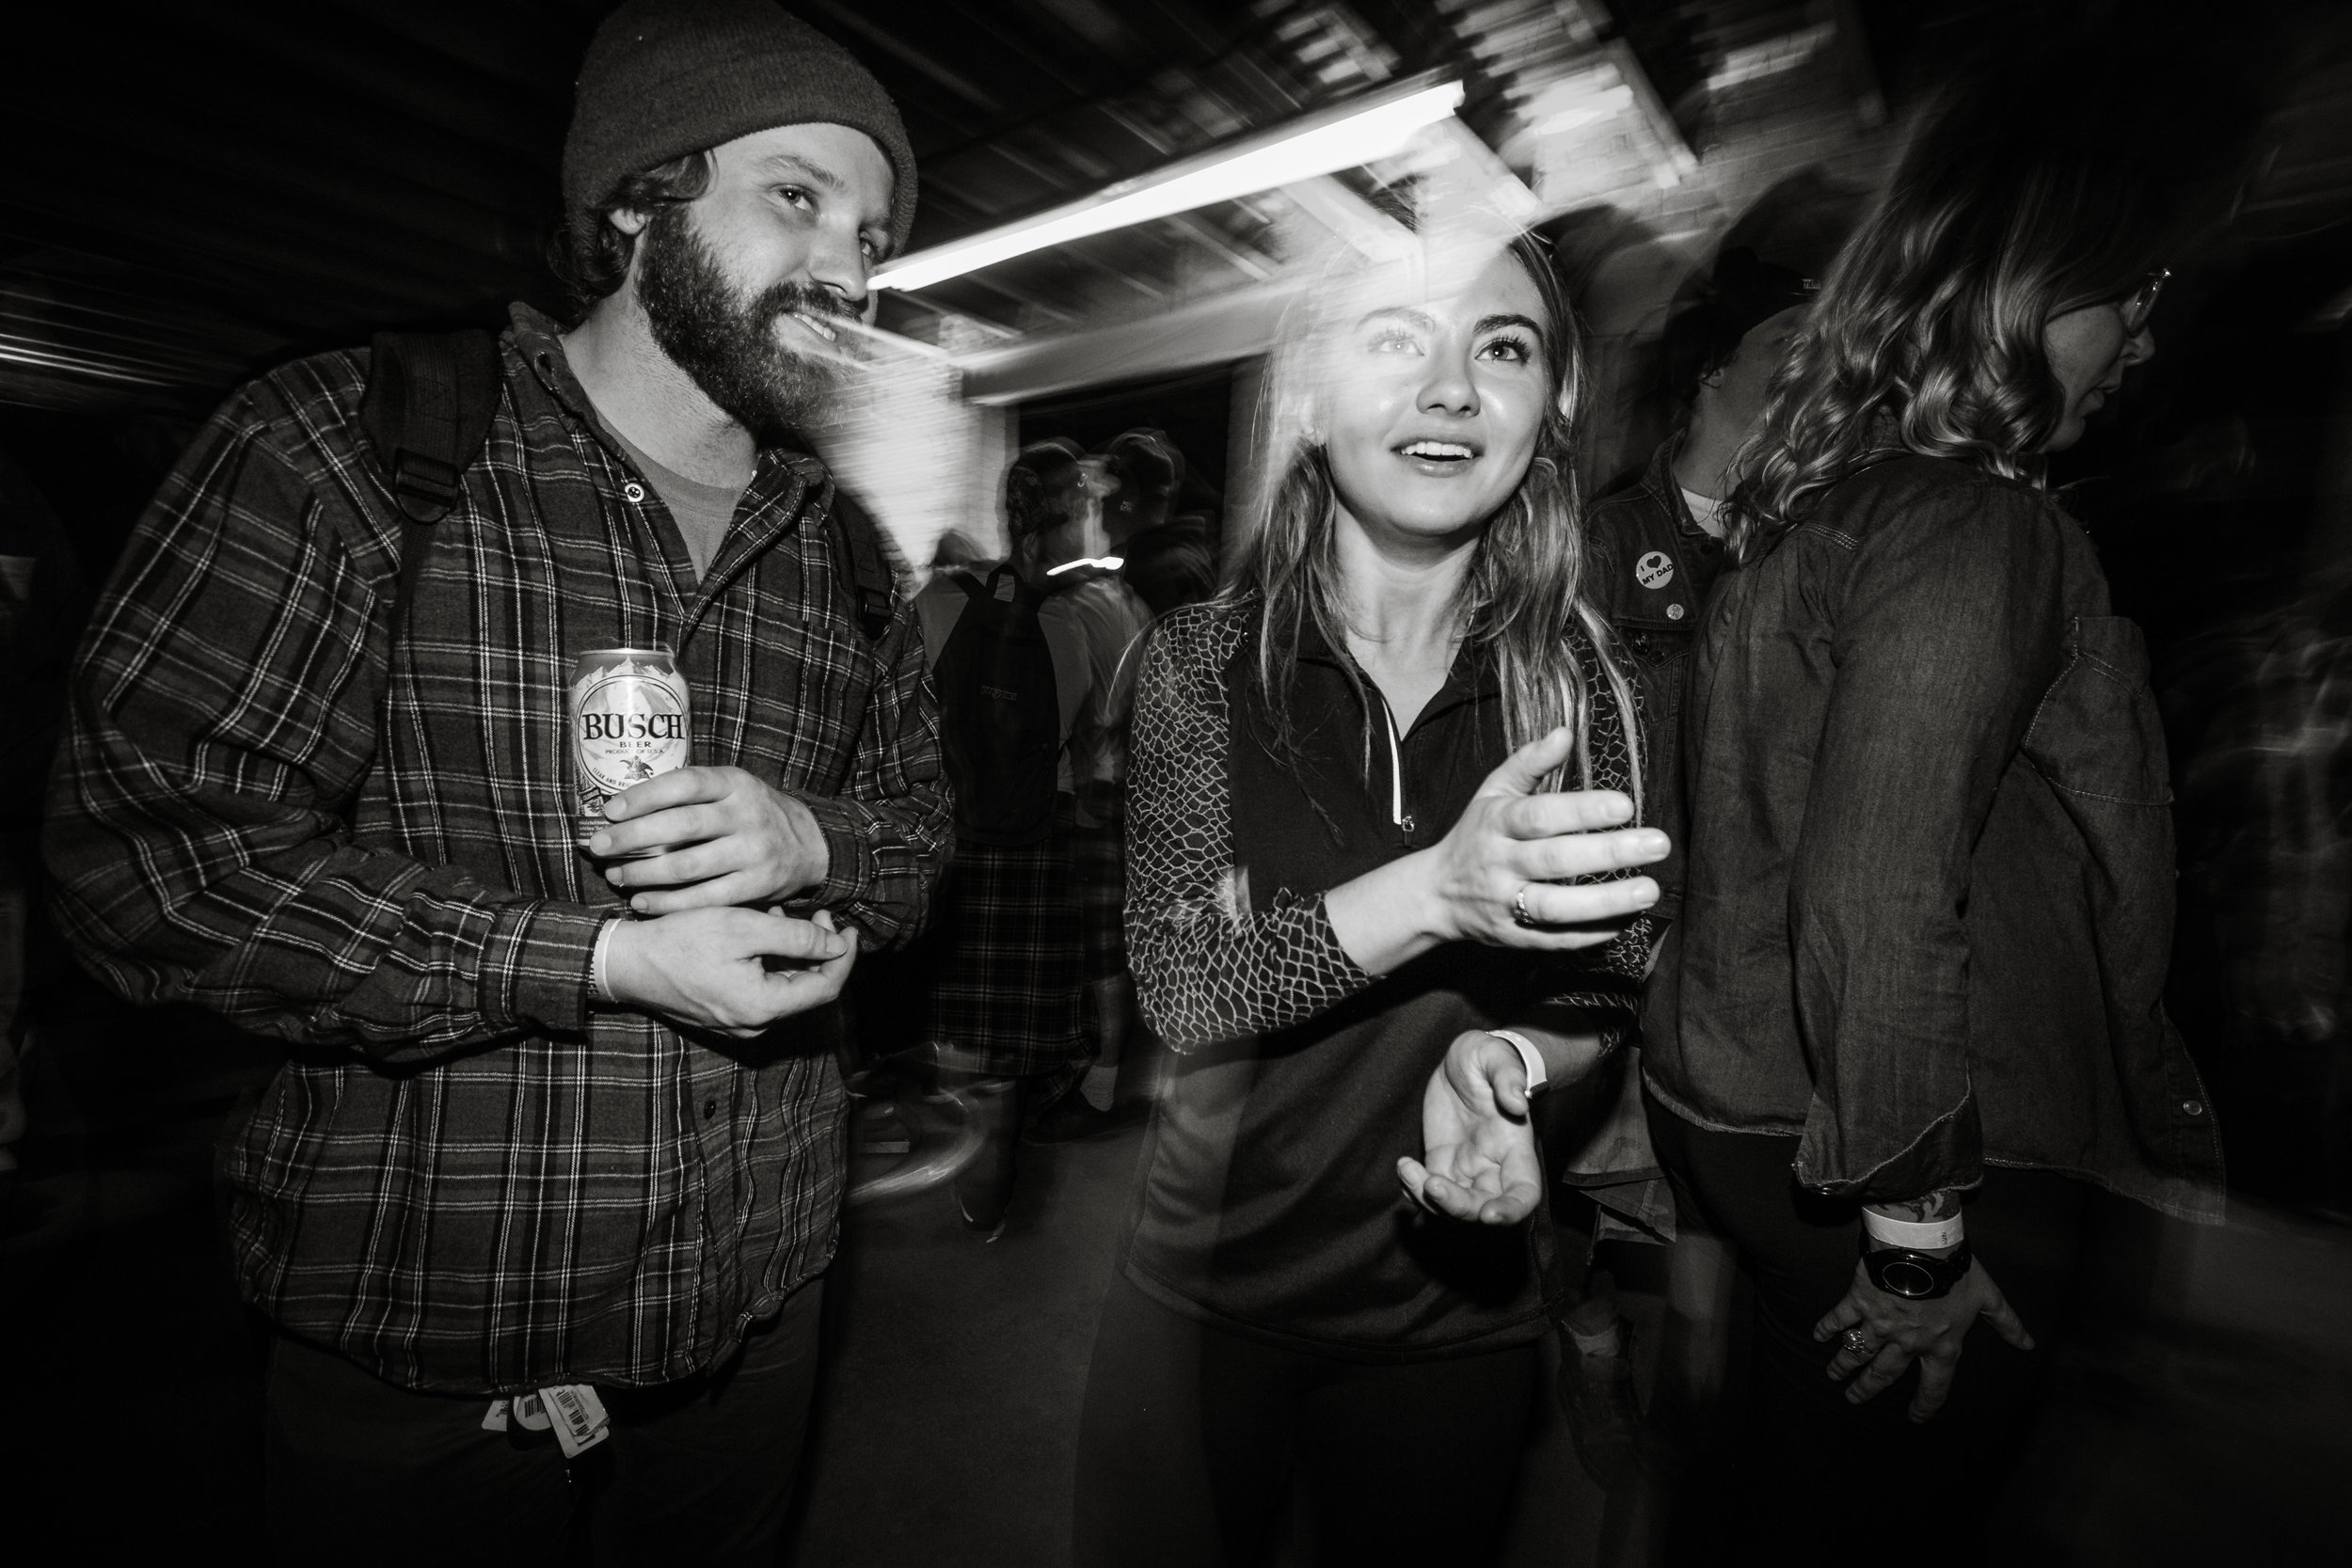 2017.2.25_party_bw (80 of 237).jpg